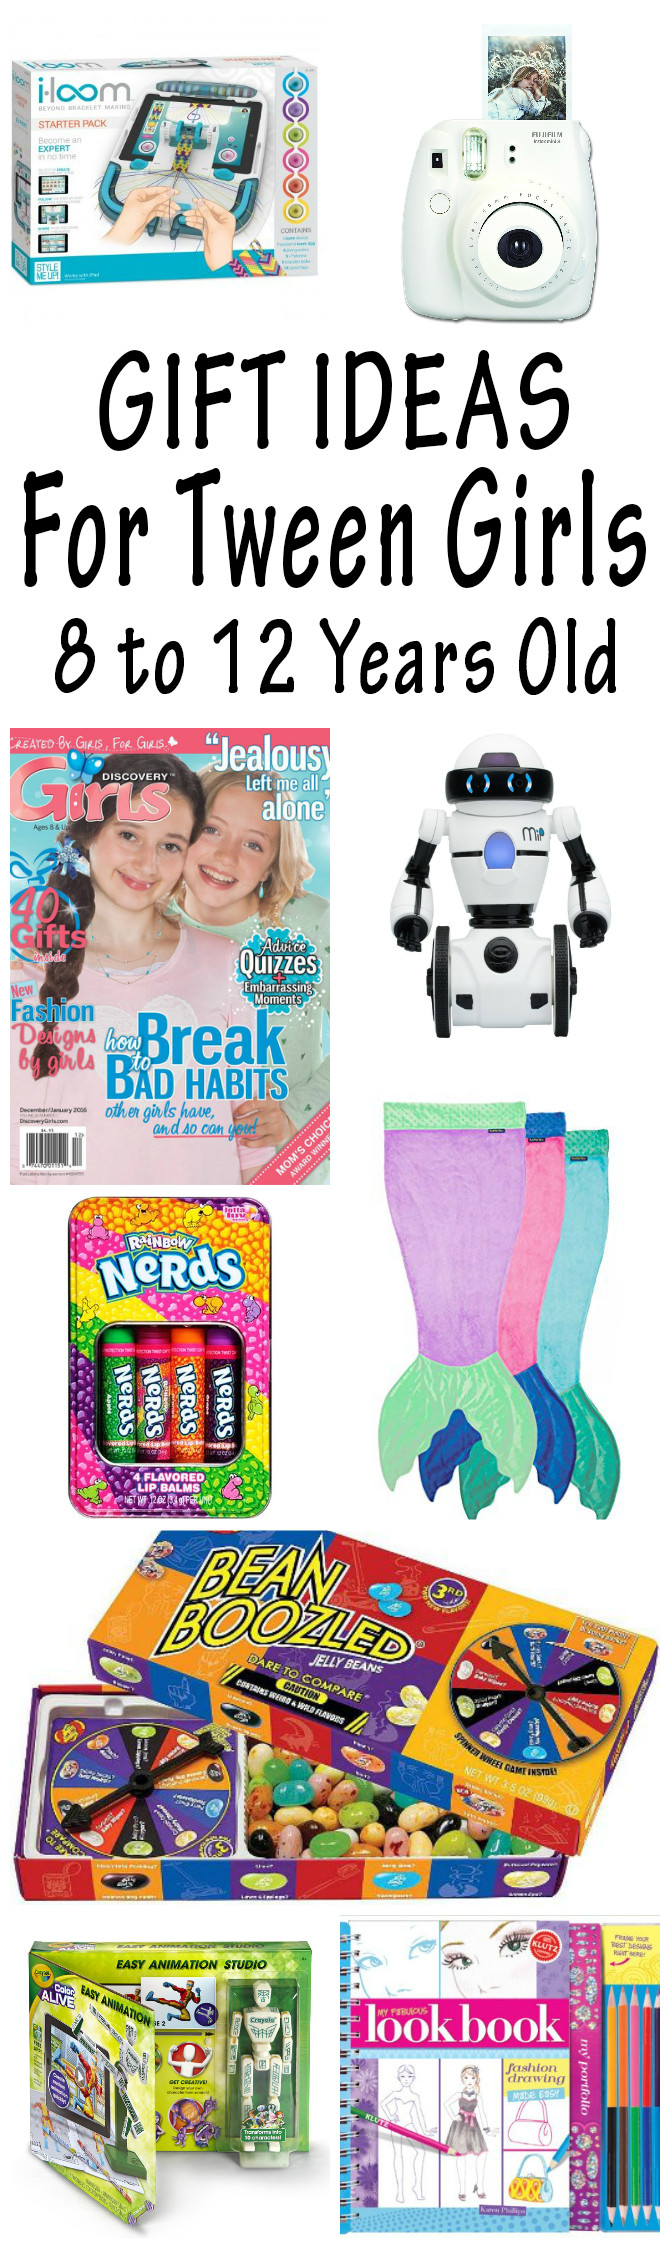 12 Year Old Christmas Gift Ideas  Gift Ideas For Tween Girls They Will Love 2017 Christmas